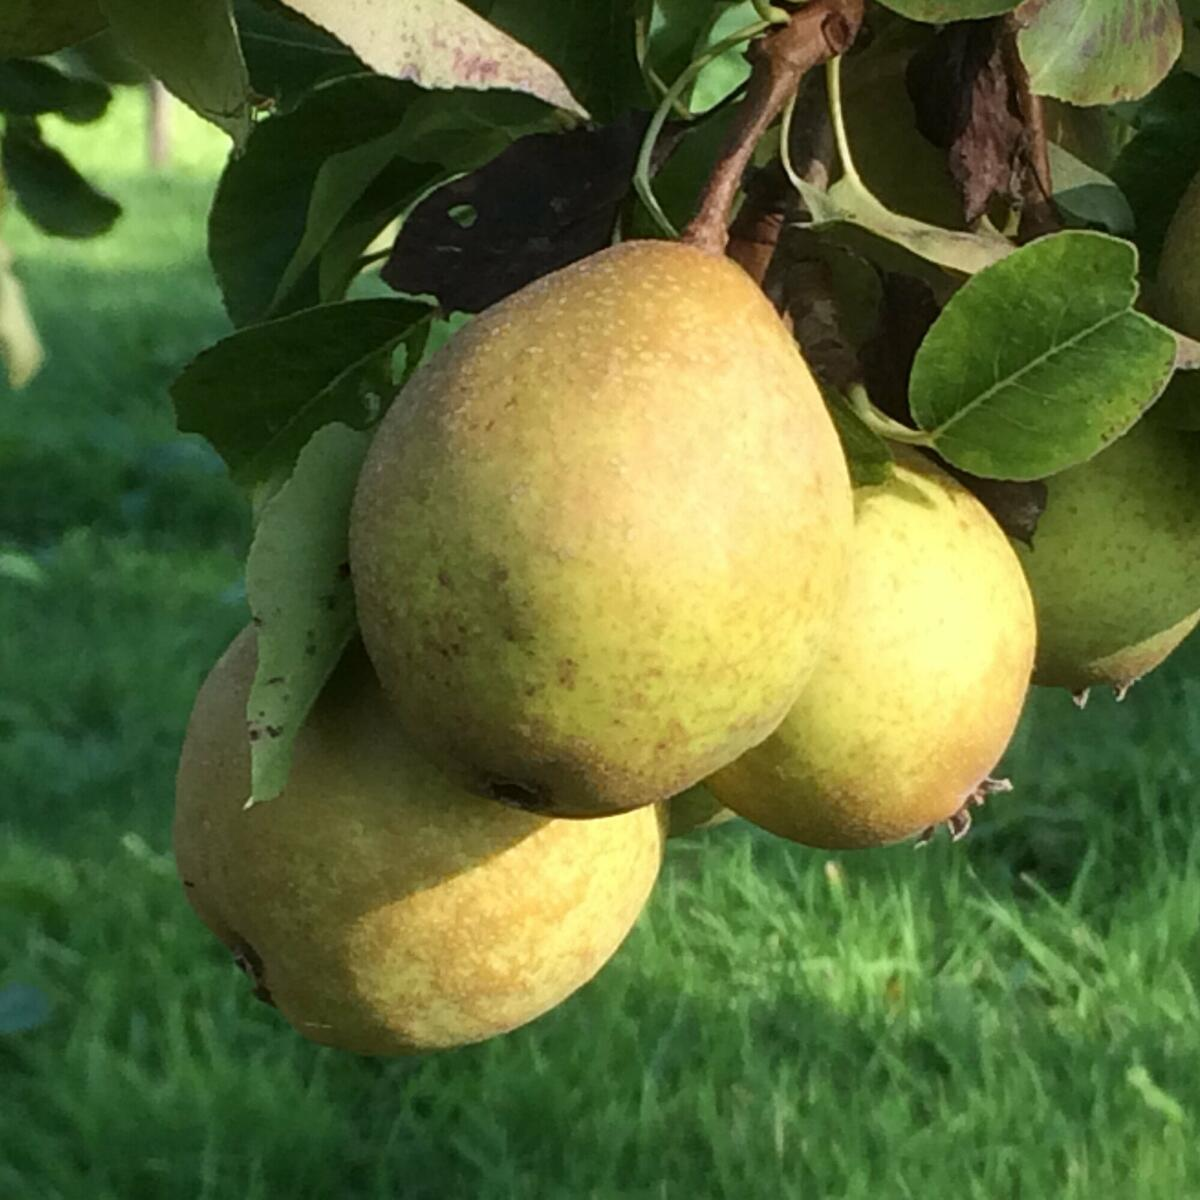 Rare Coppy perry pears in our orchard